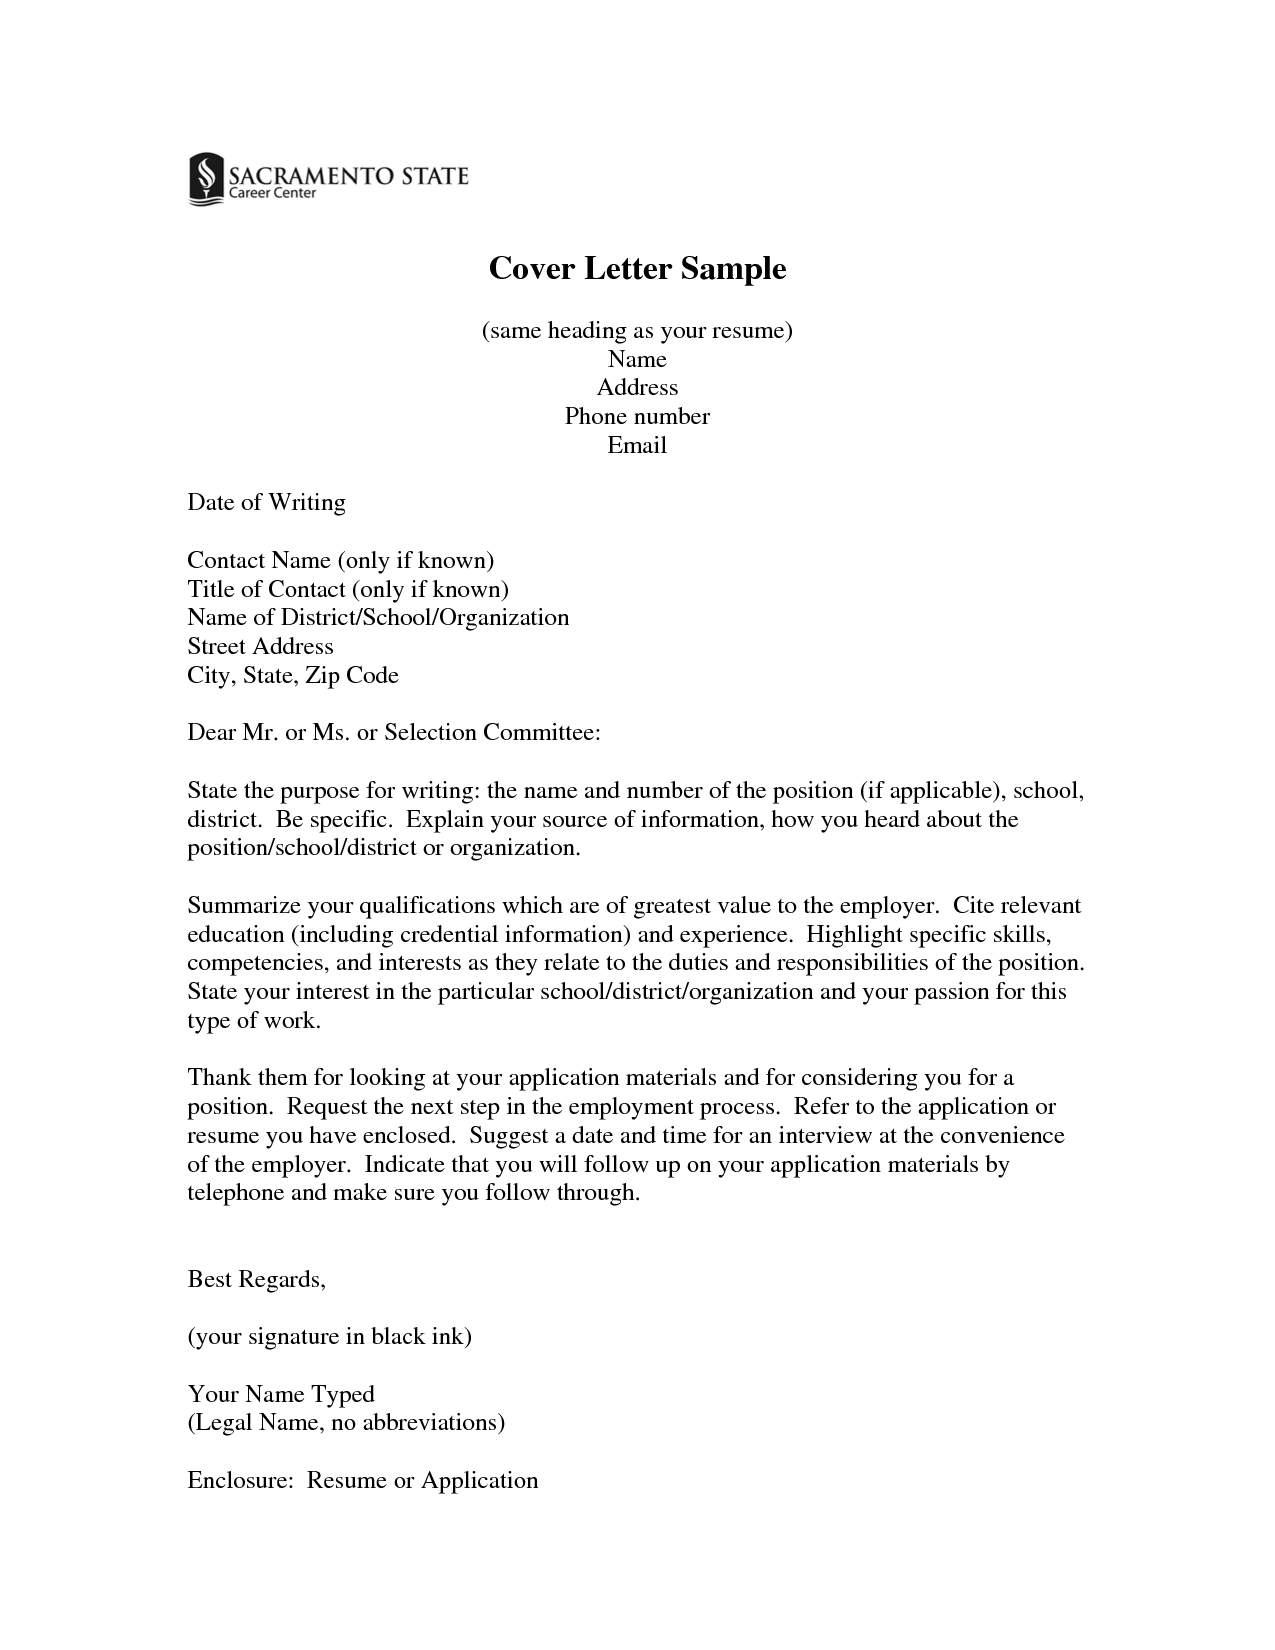 Same Cover Letters For Resume | Cover Letter Sample Same Heading As Your  Resume Name Address  What To Write In A Resume Cover Letter